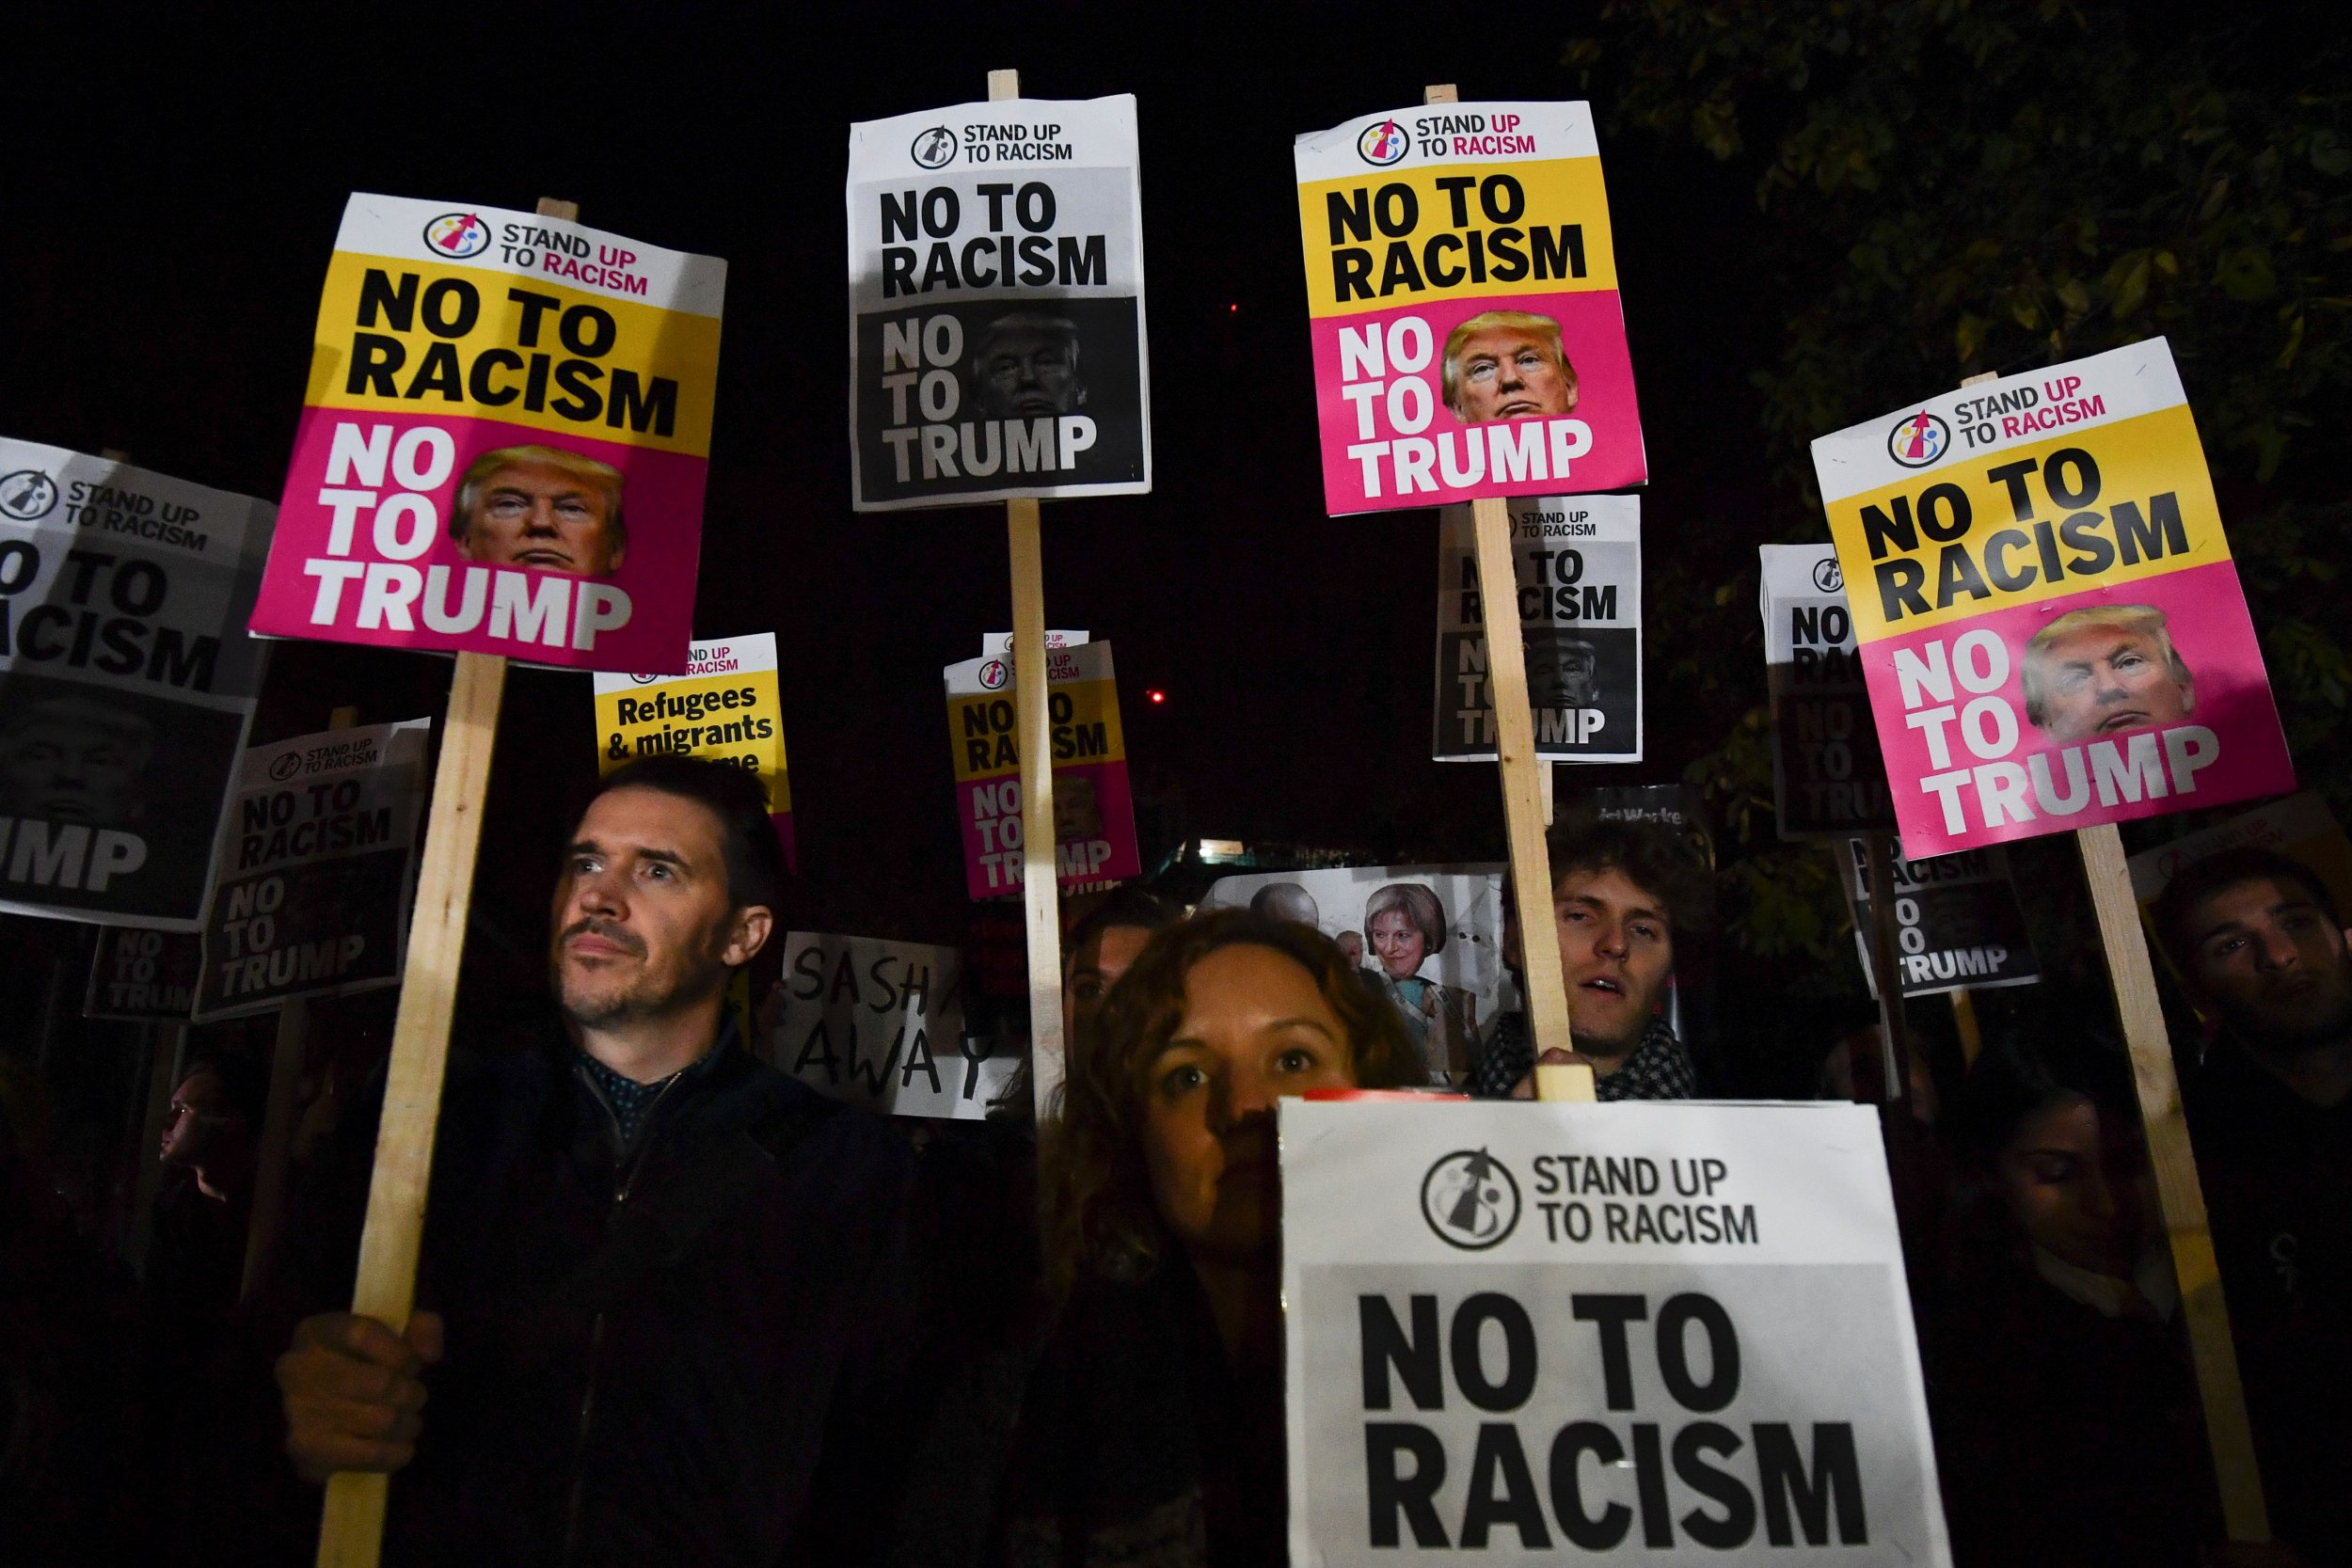 Donald Trump Repulican Party black outreach racism